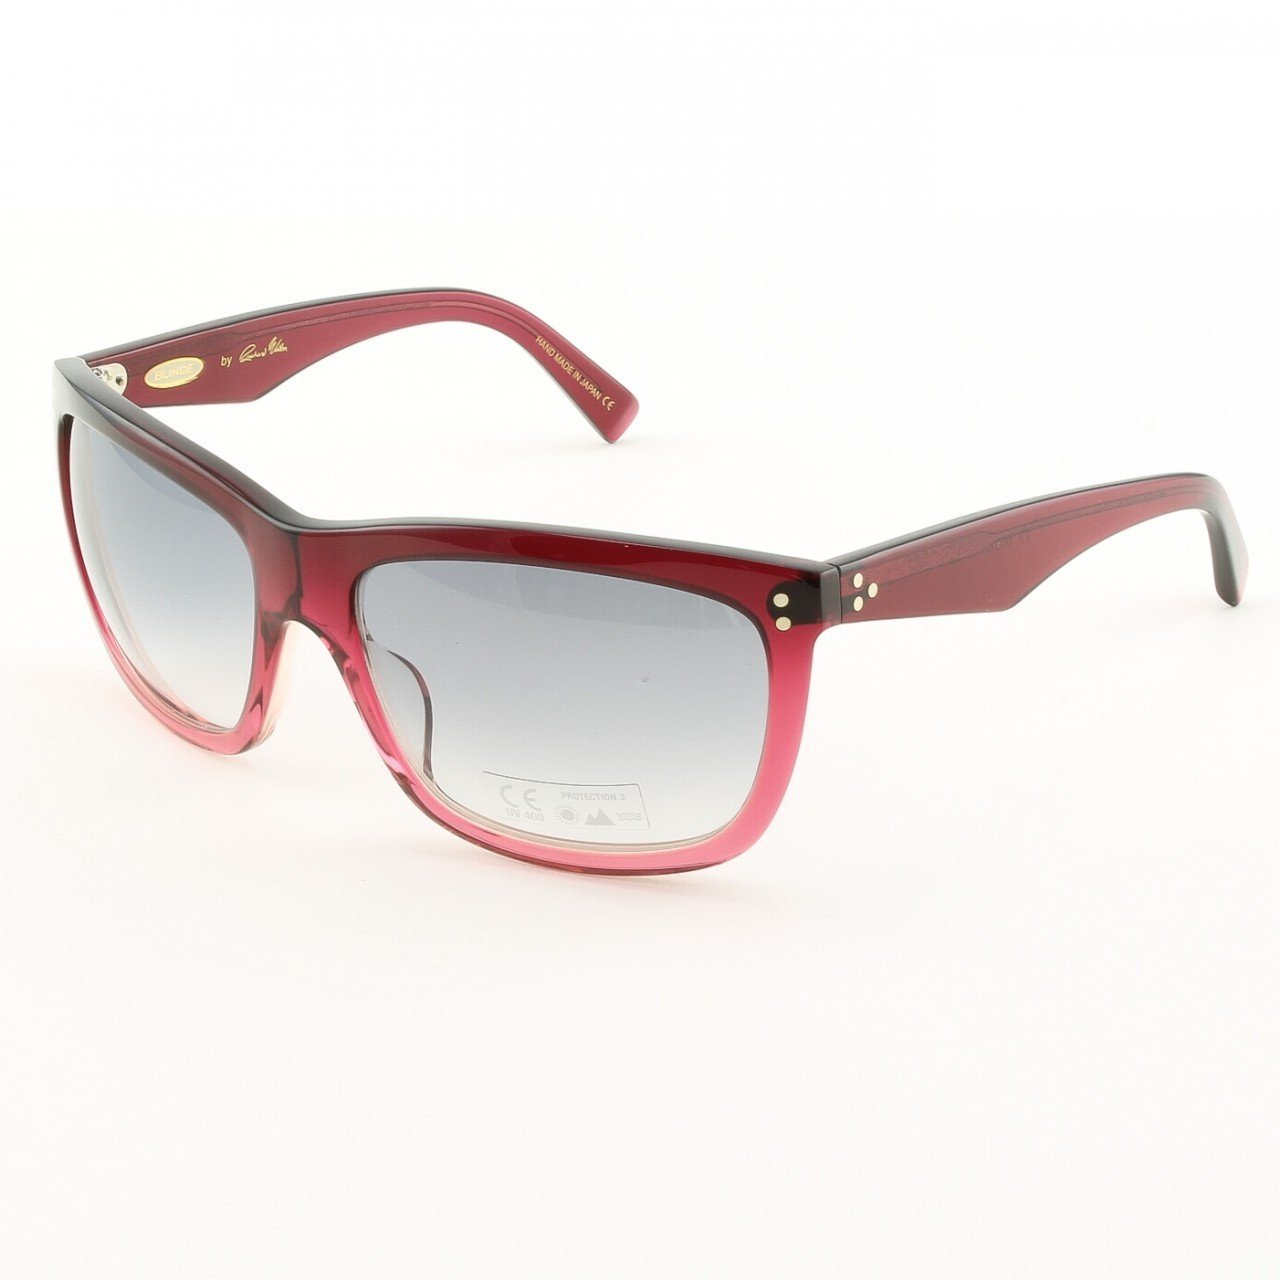 Blinde I'll Make It Up 2 U Unisex Sunglasses Col. Red Cranberry Fade with Purple Gradient Lenses